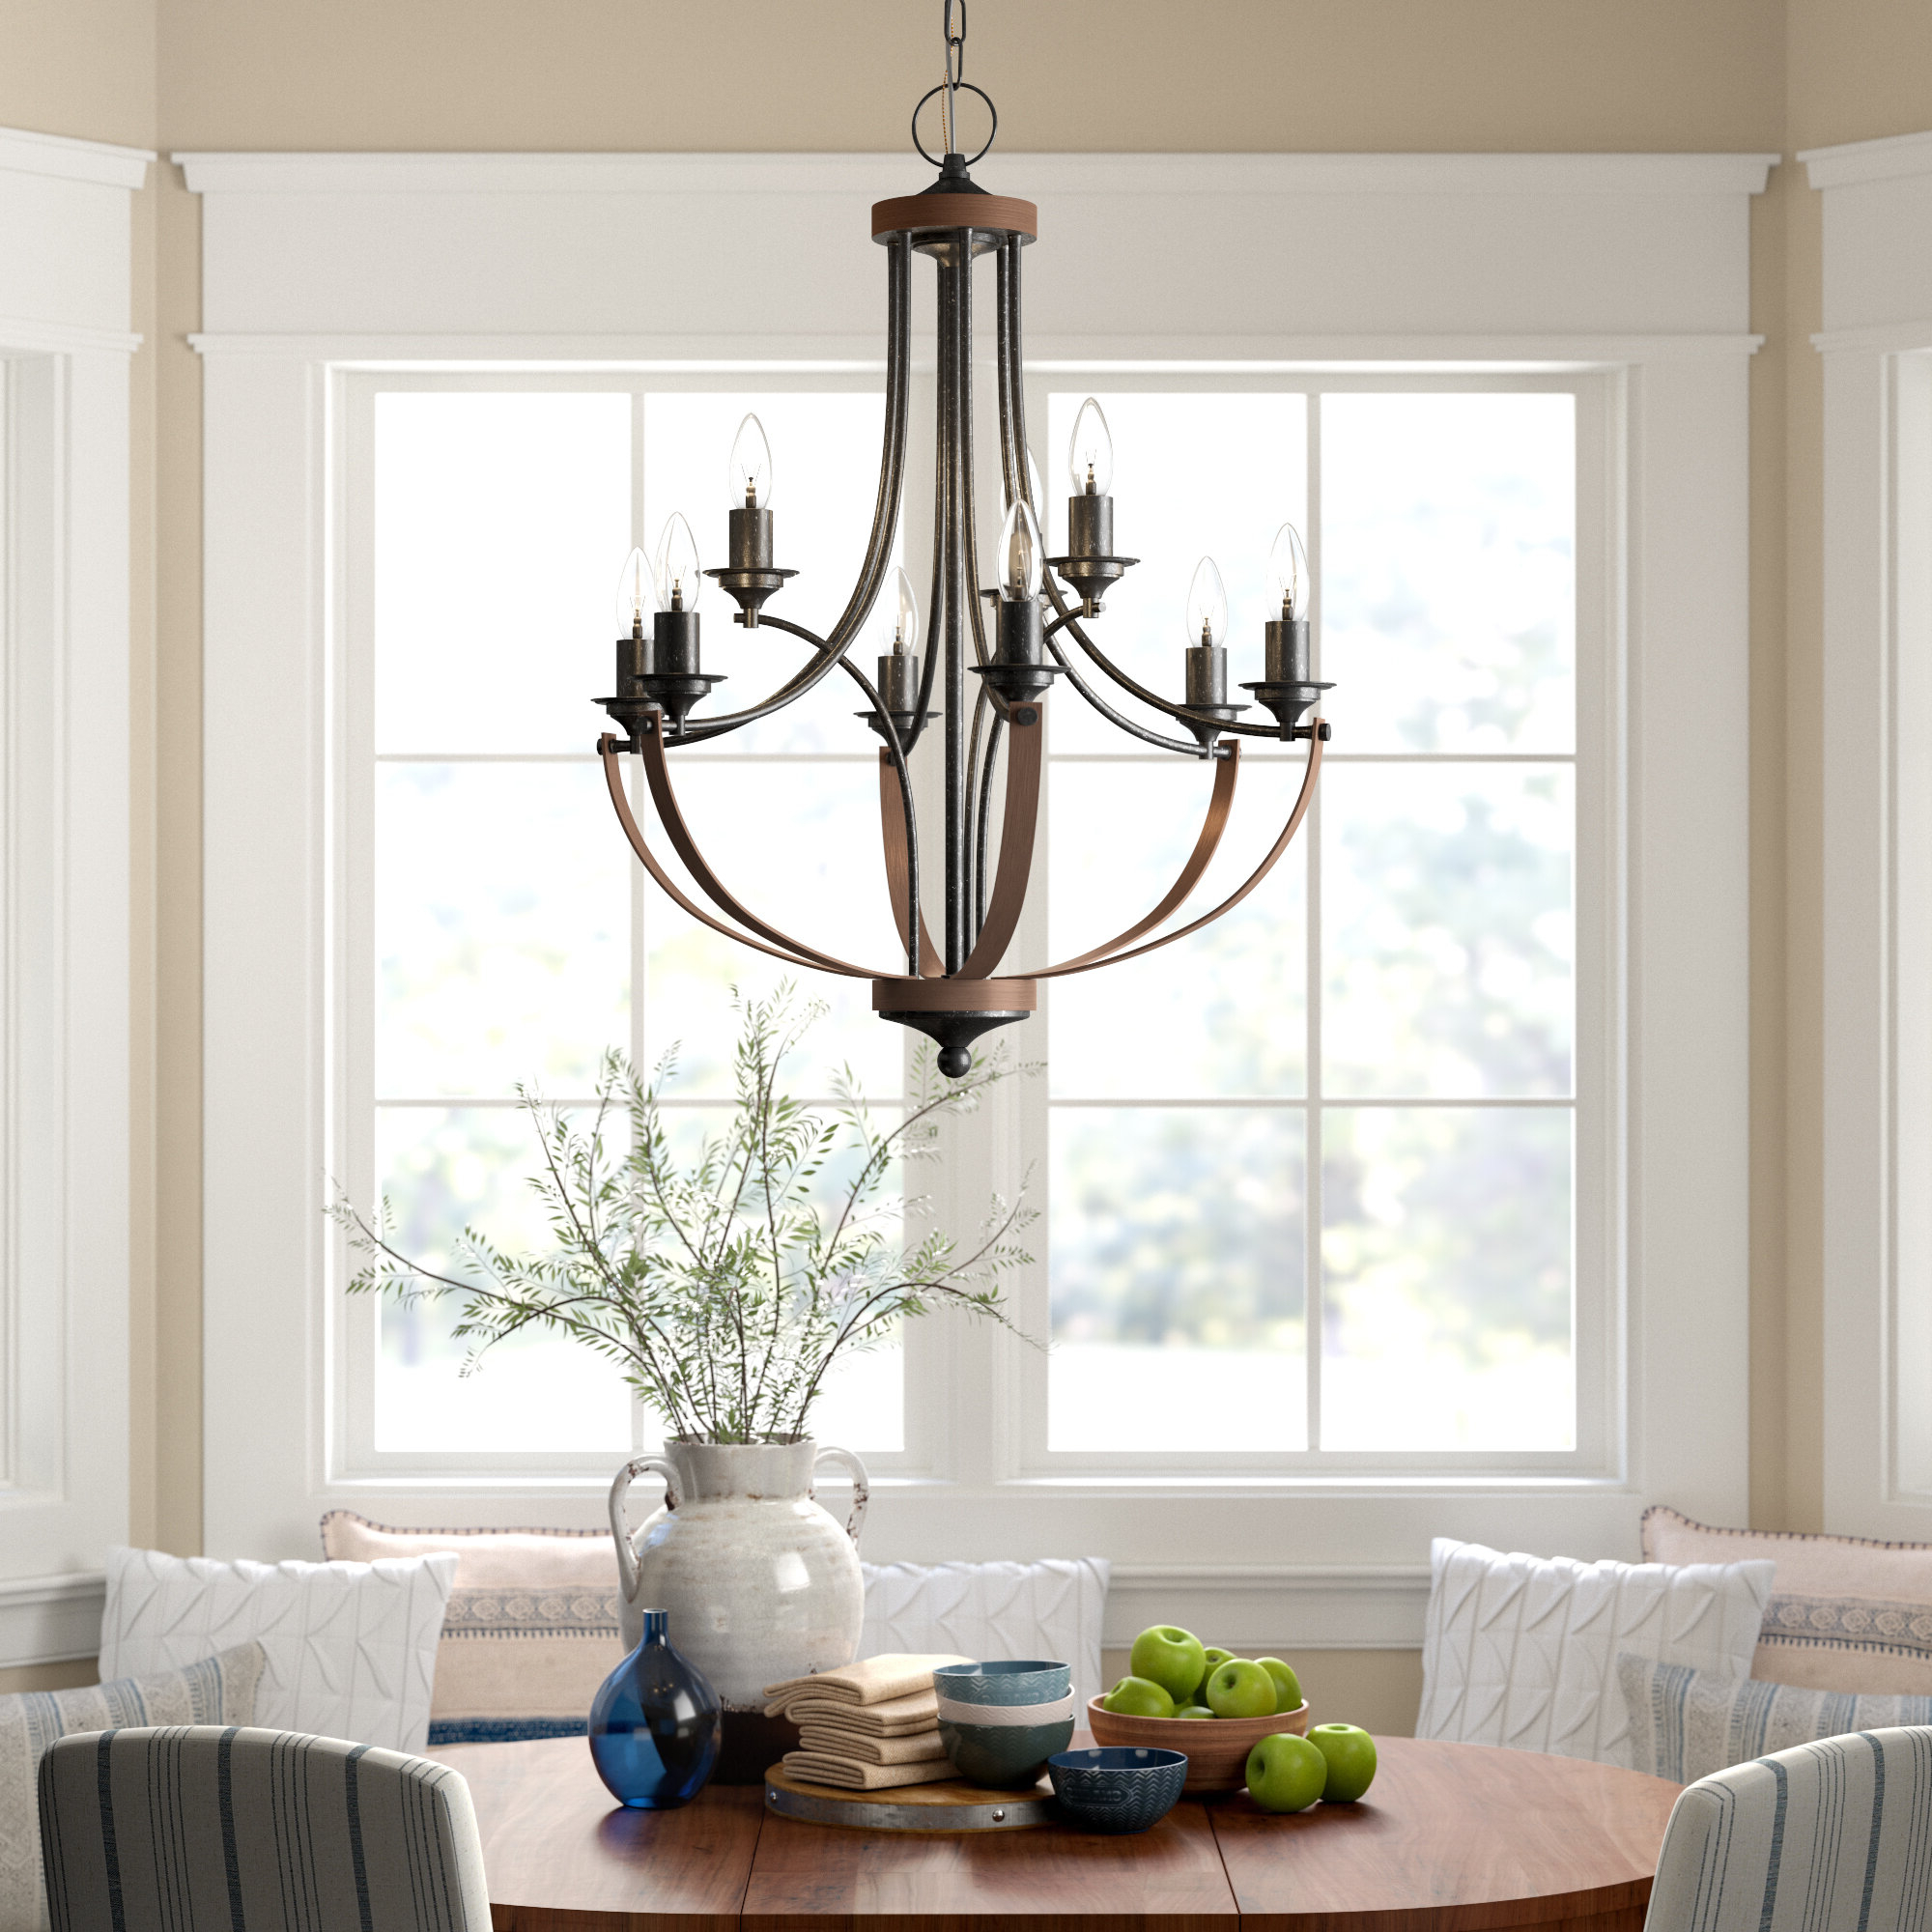 2019 Camilla 9 Light Candle Style Chandelier Intended For Camilla 9 Light Candle Style Chandeliers (View 1 of 25)